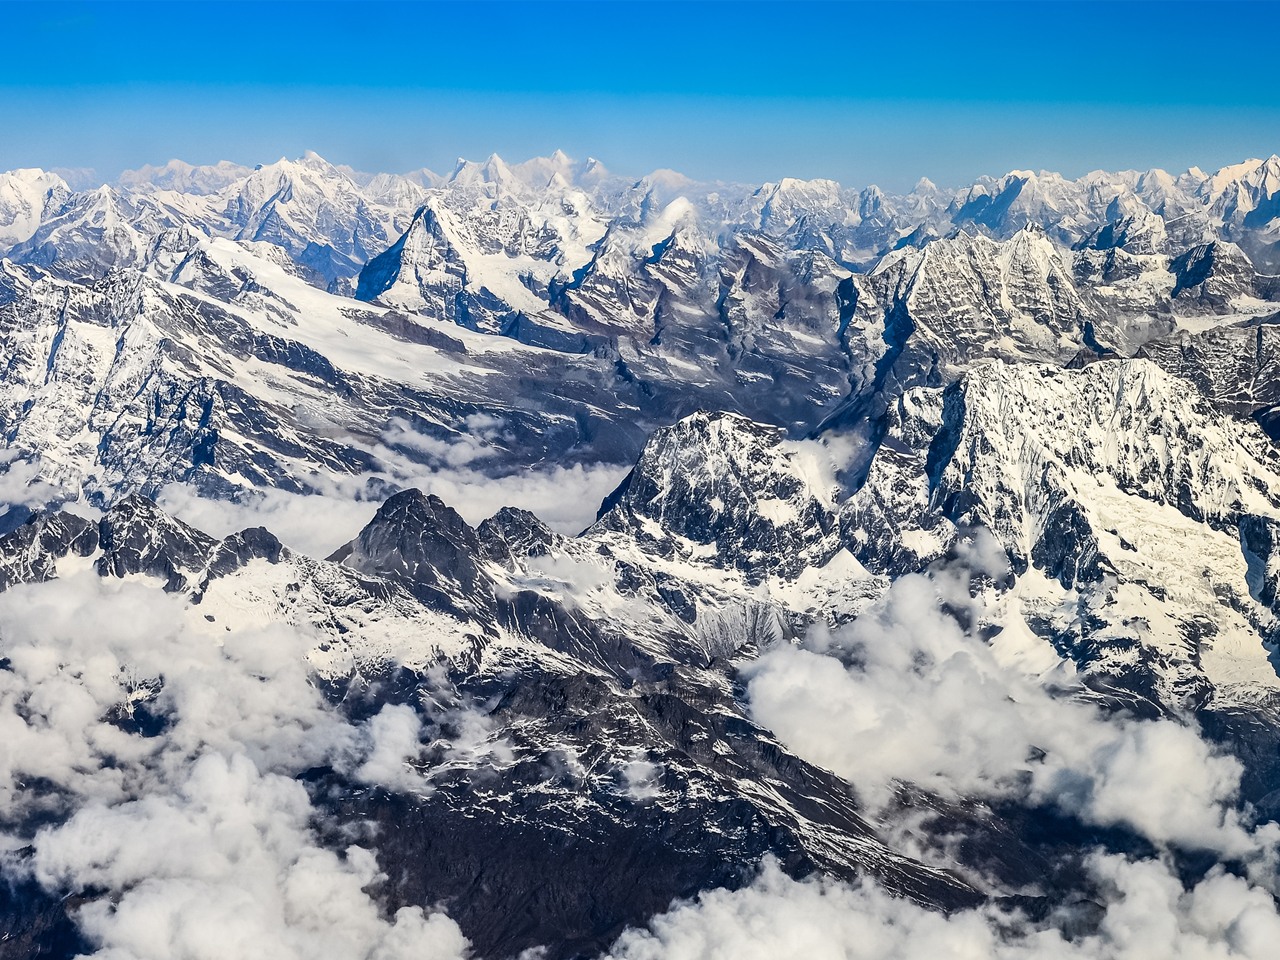 High Resolution Wallpaper | Himalayas 1280x960 px